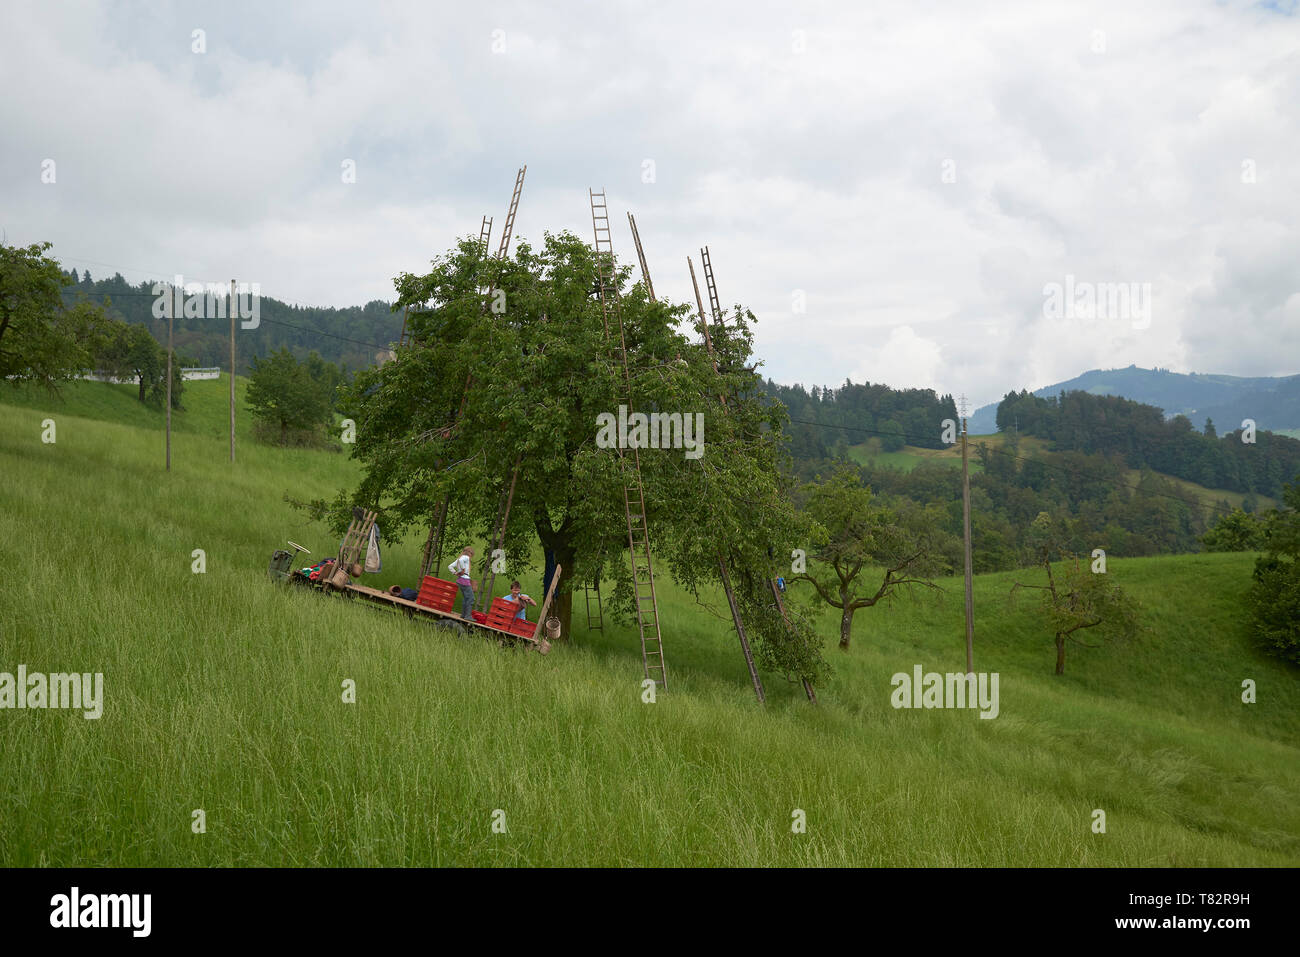 Family picking apples from the tree using large wooden ladders in a filed on a hill - Stock Image